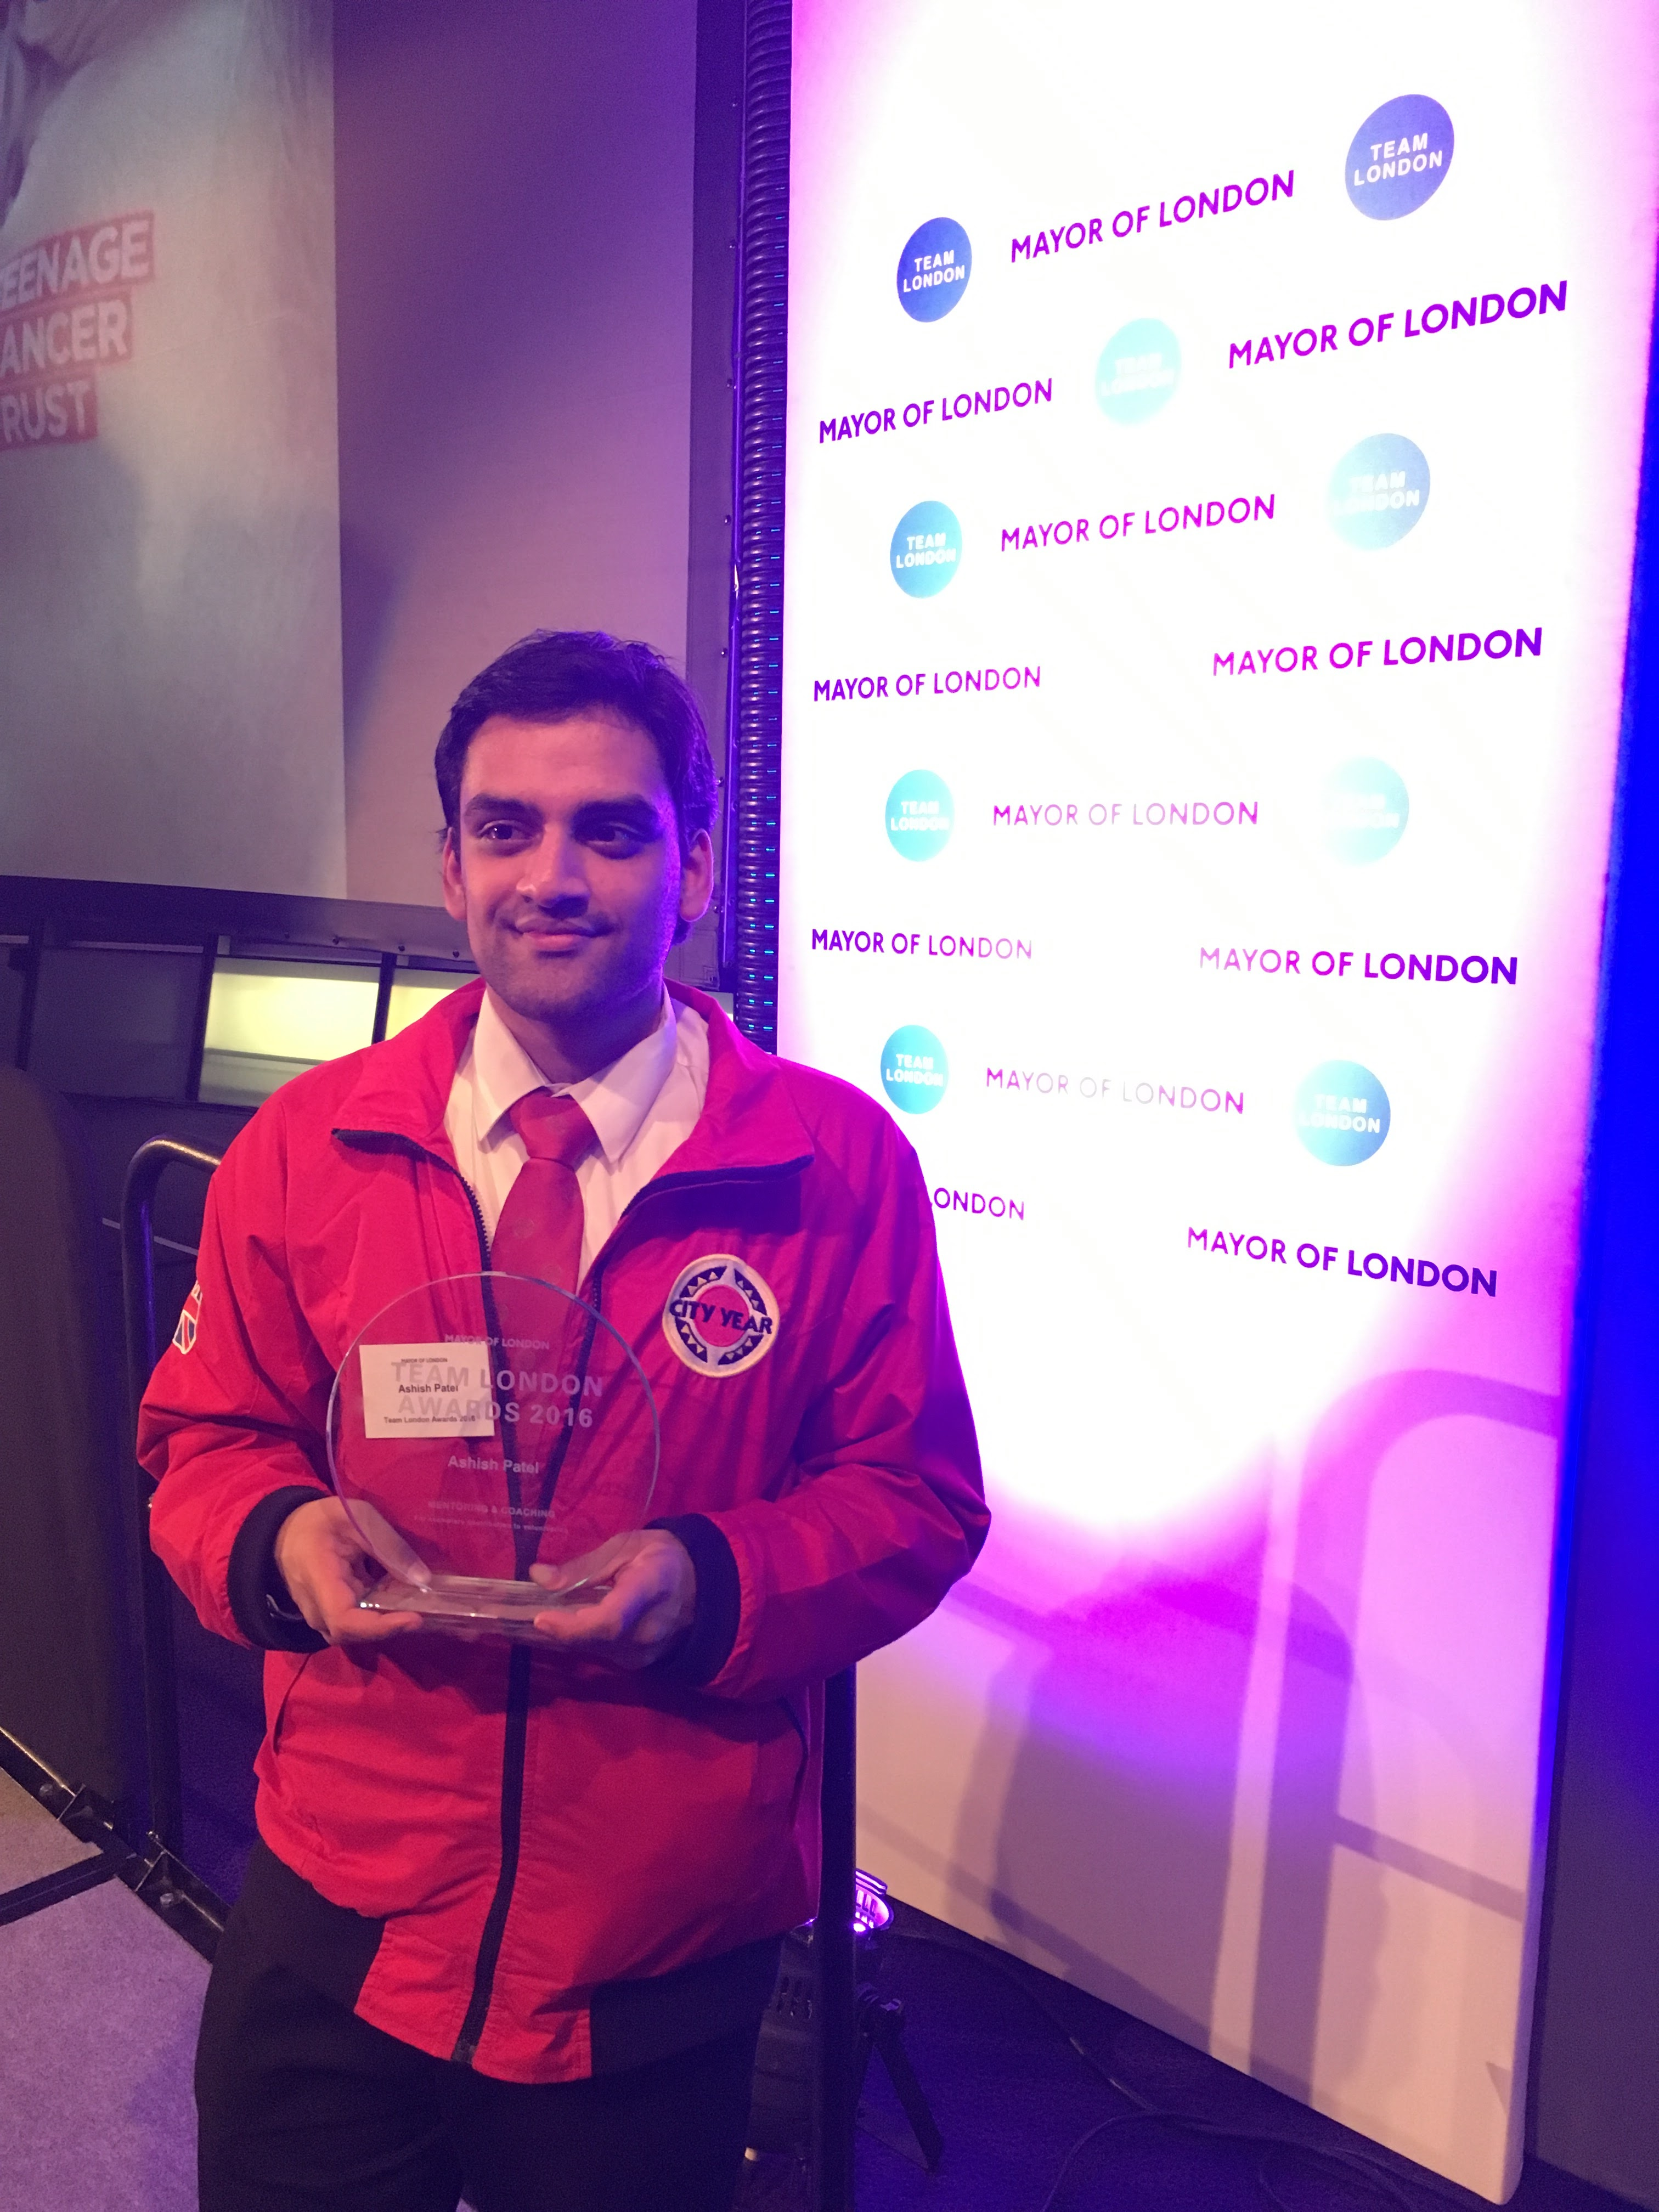 lse graduate wins prestigious team london volunteering award lse lse graduate wins prestigious team london volunteering award